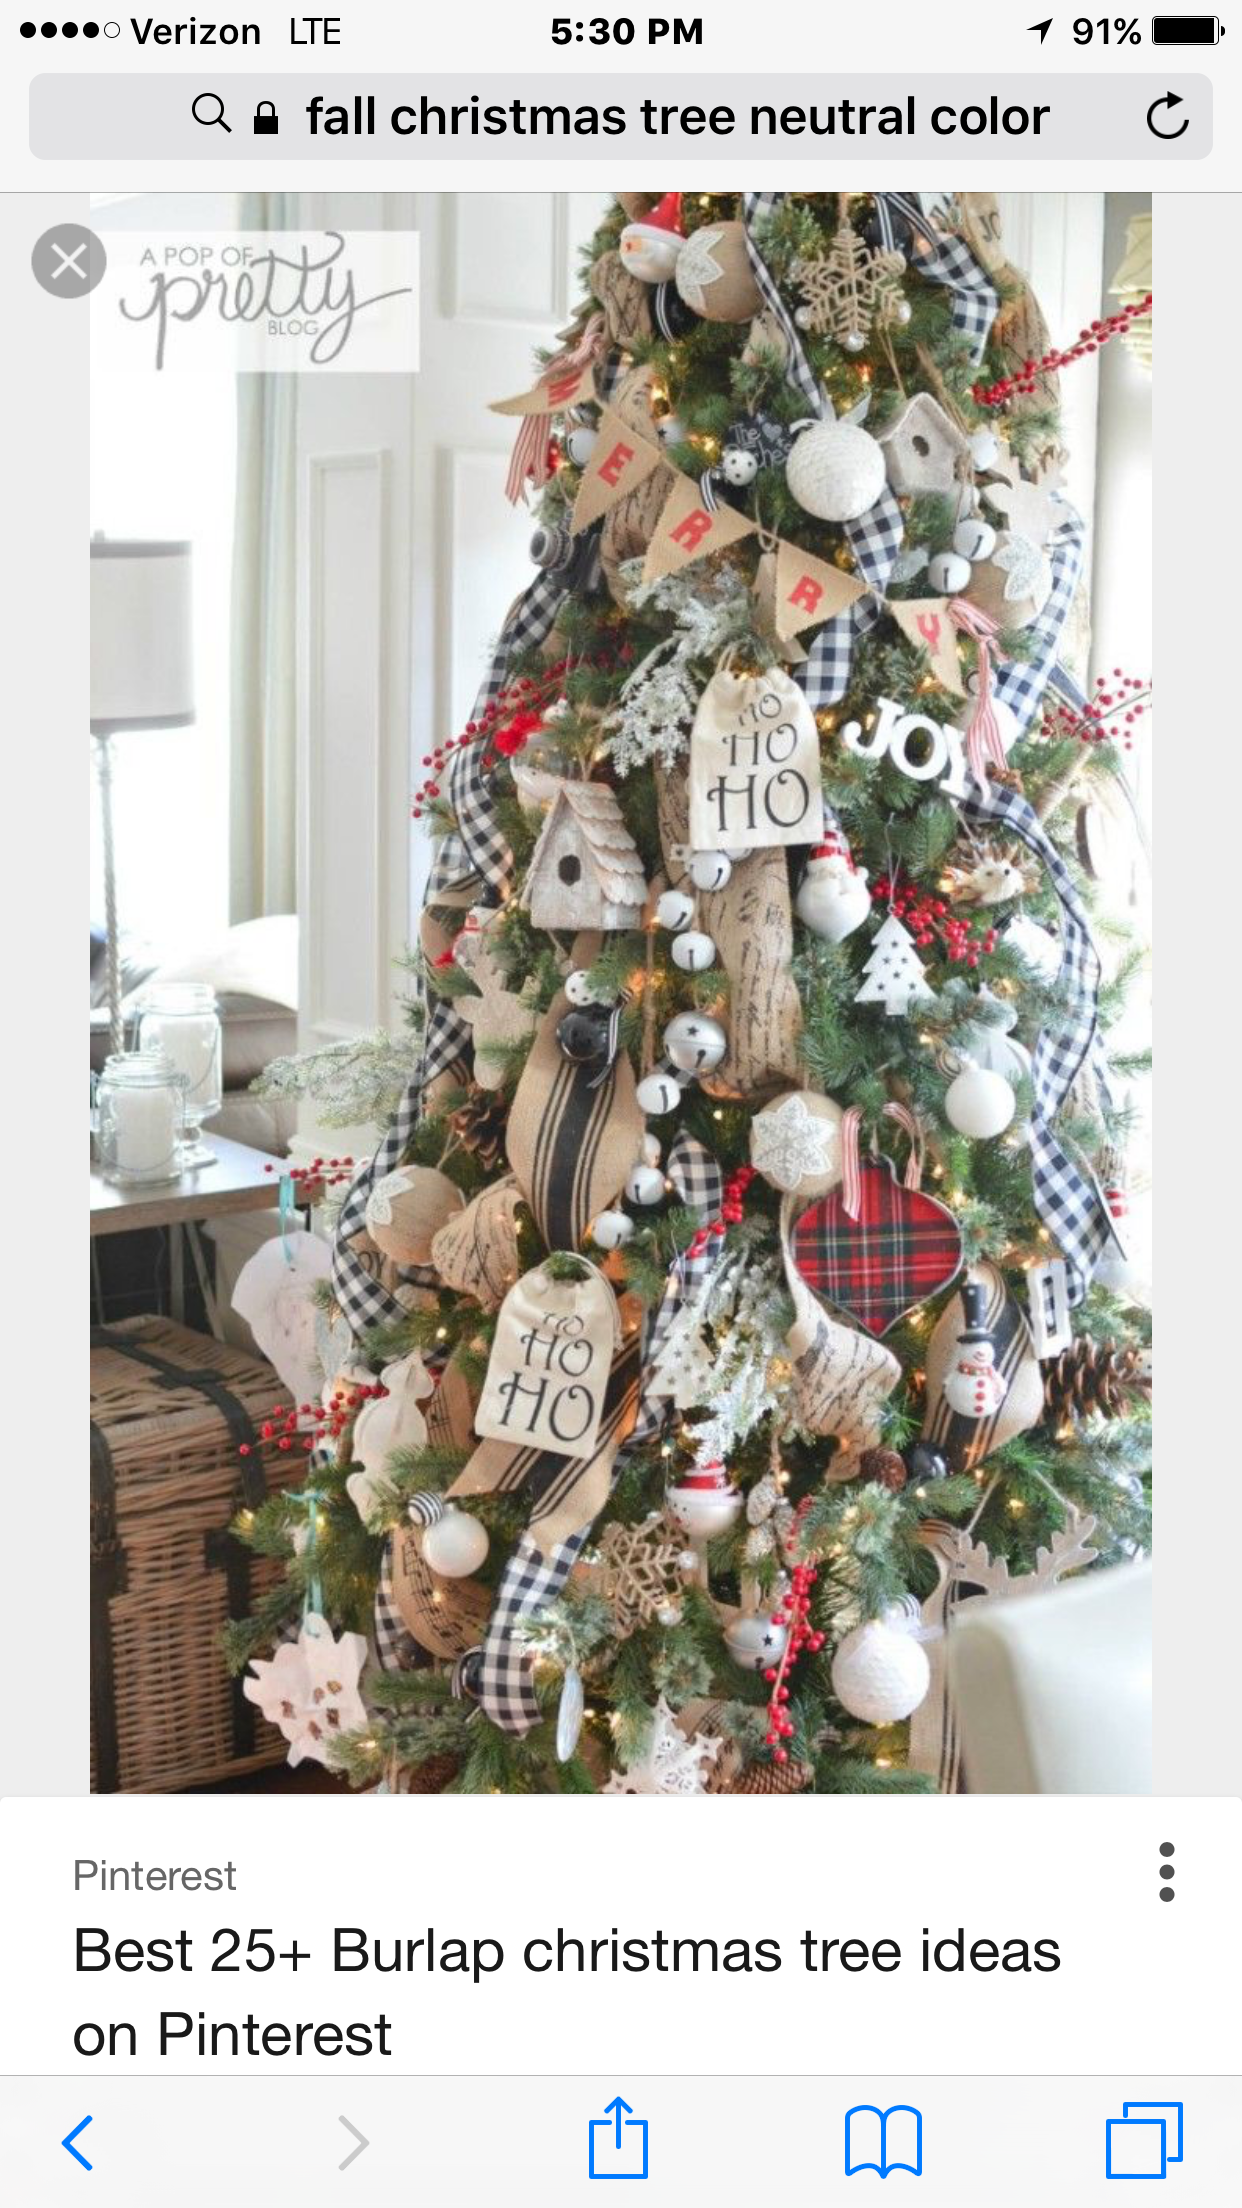 Inspiration for your fixer upper or farmhouse style Christmas home decor.  Everything a farmhouse lover needs.